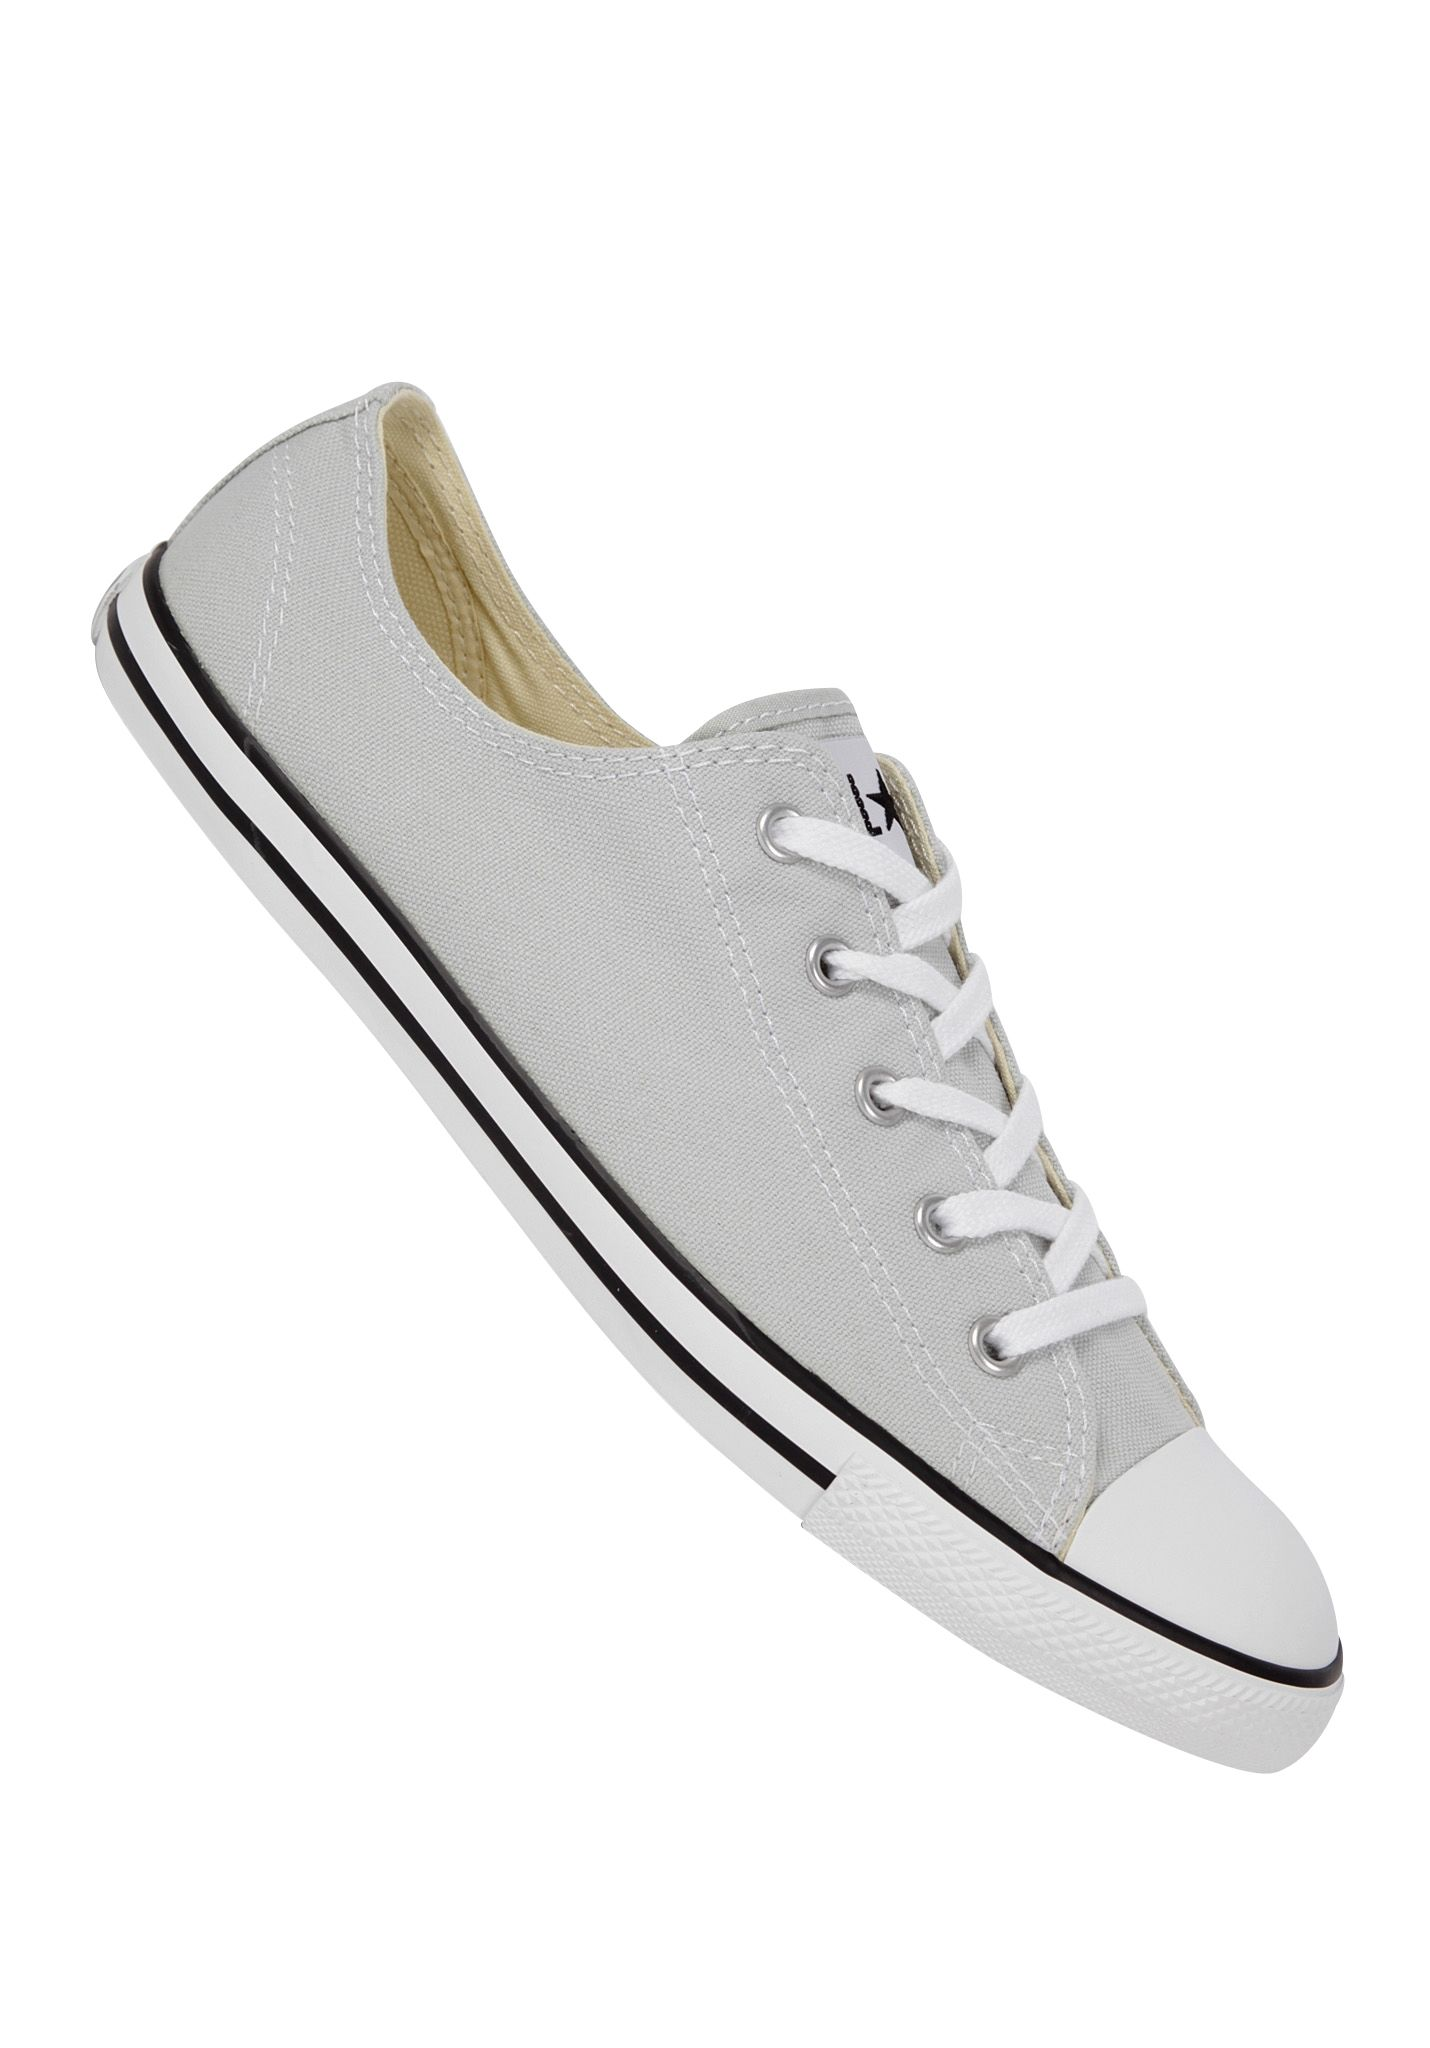 5fe301c85c2534 Converse Chuck Taylor All Star Dainty Basic Ox Canvas - Sneakers for Women  - Grey - Planet Sports